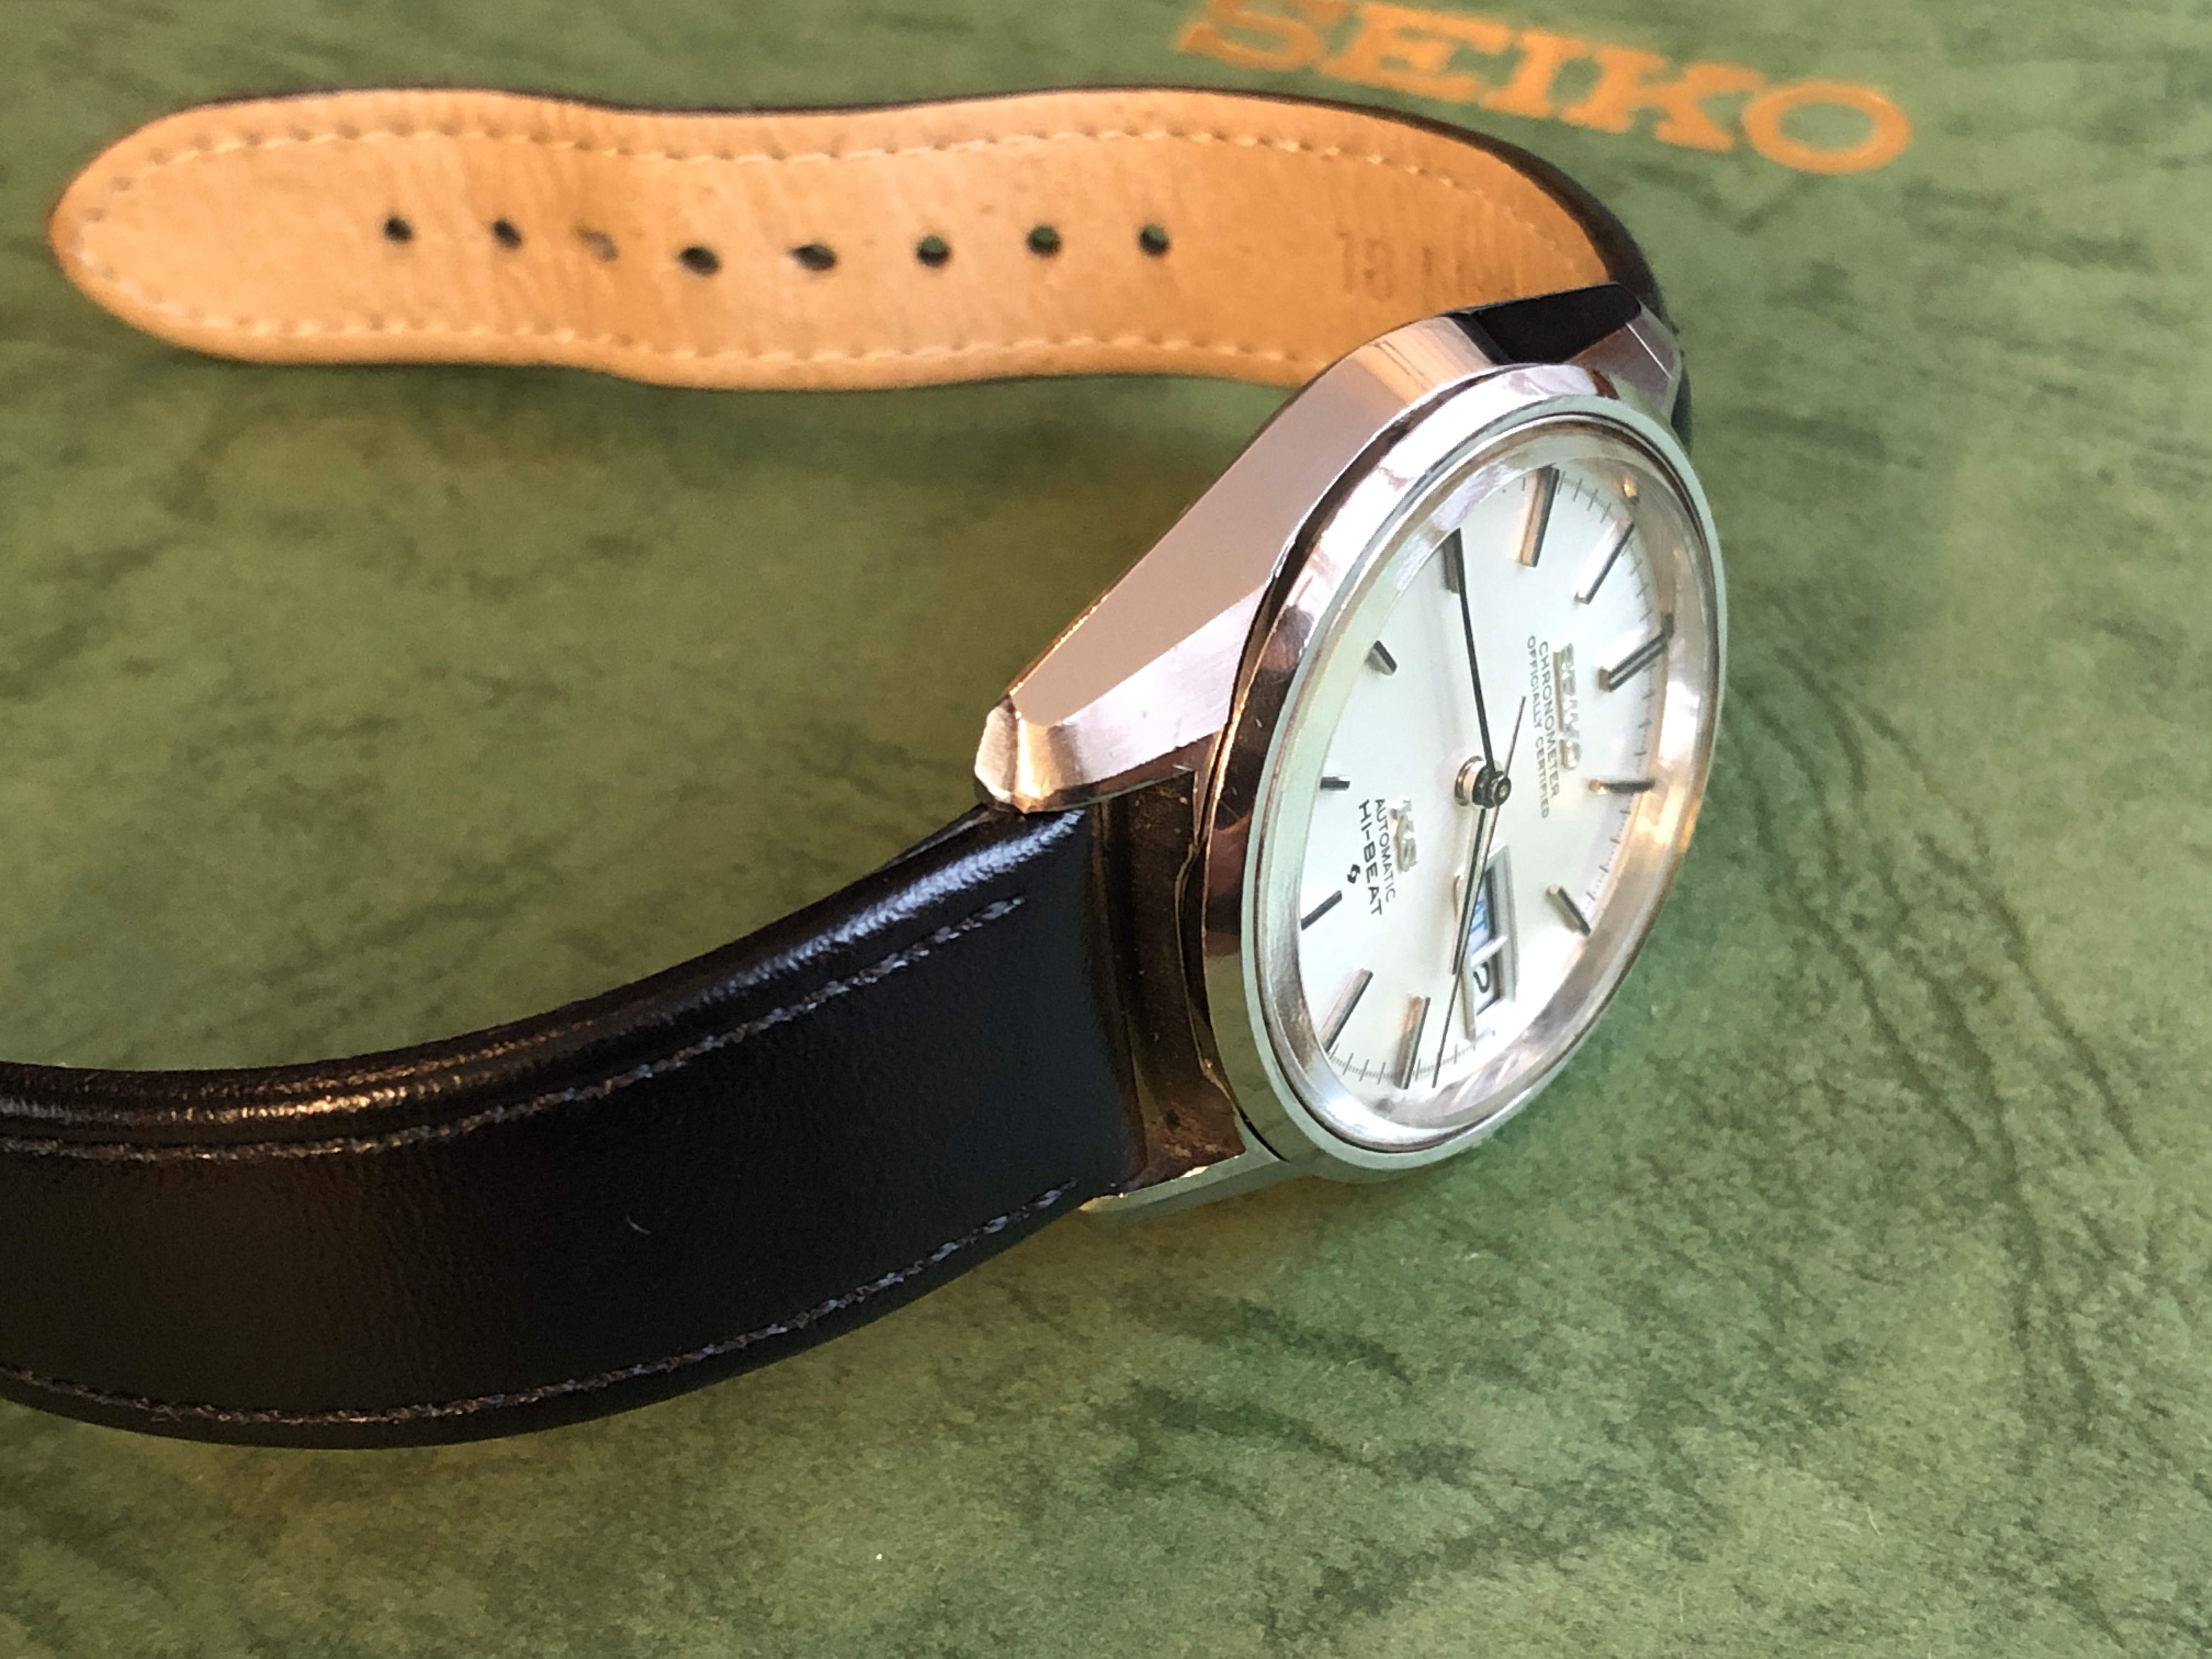 King Seiko Chronometer 5626-7041 (Sold)